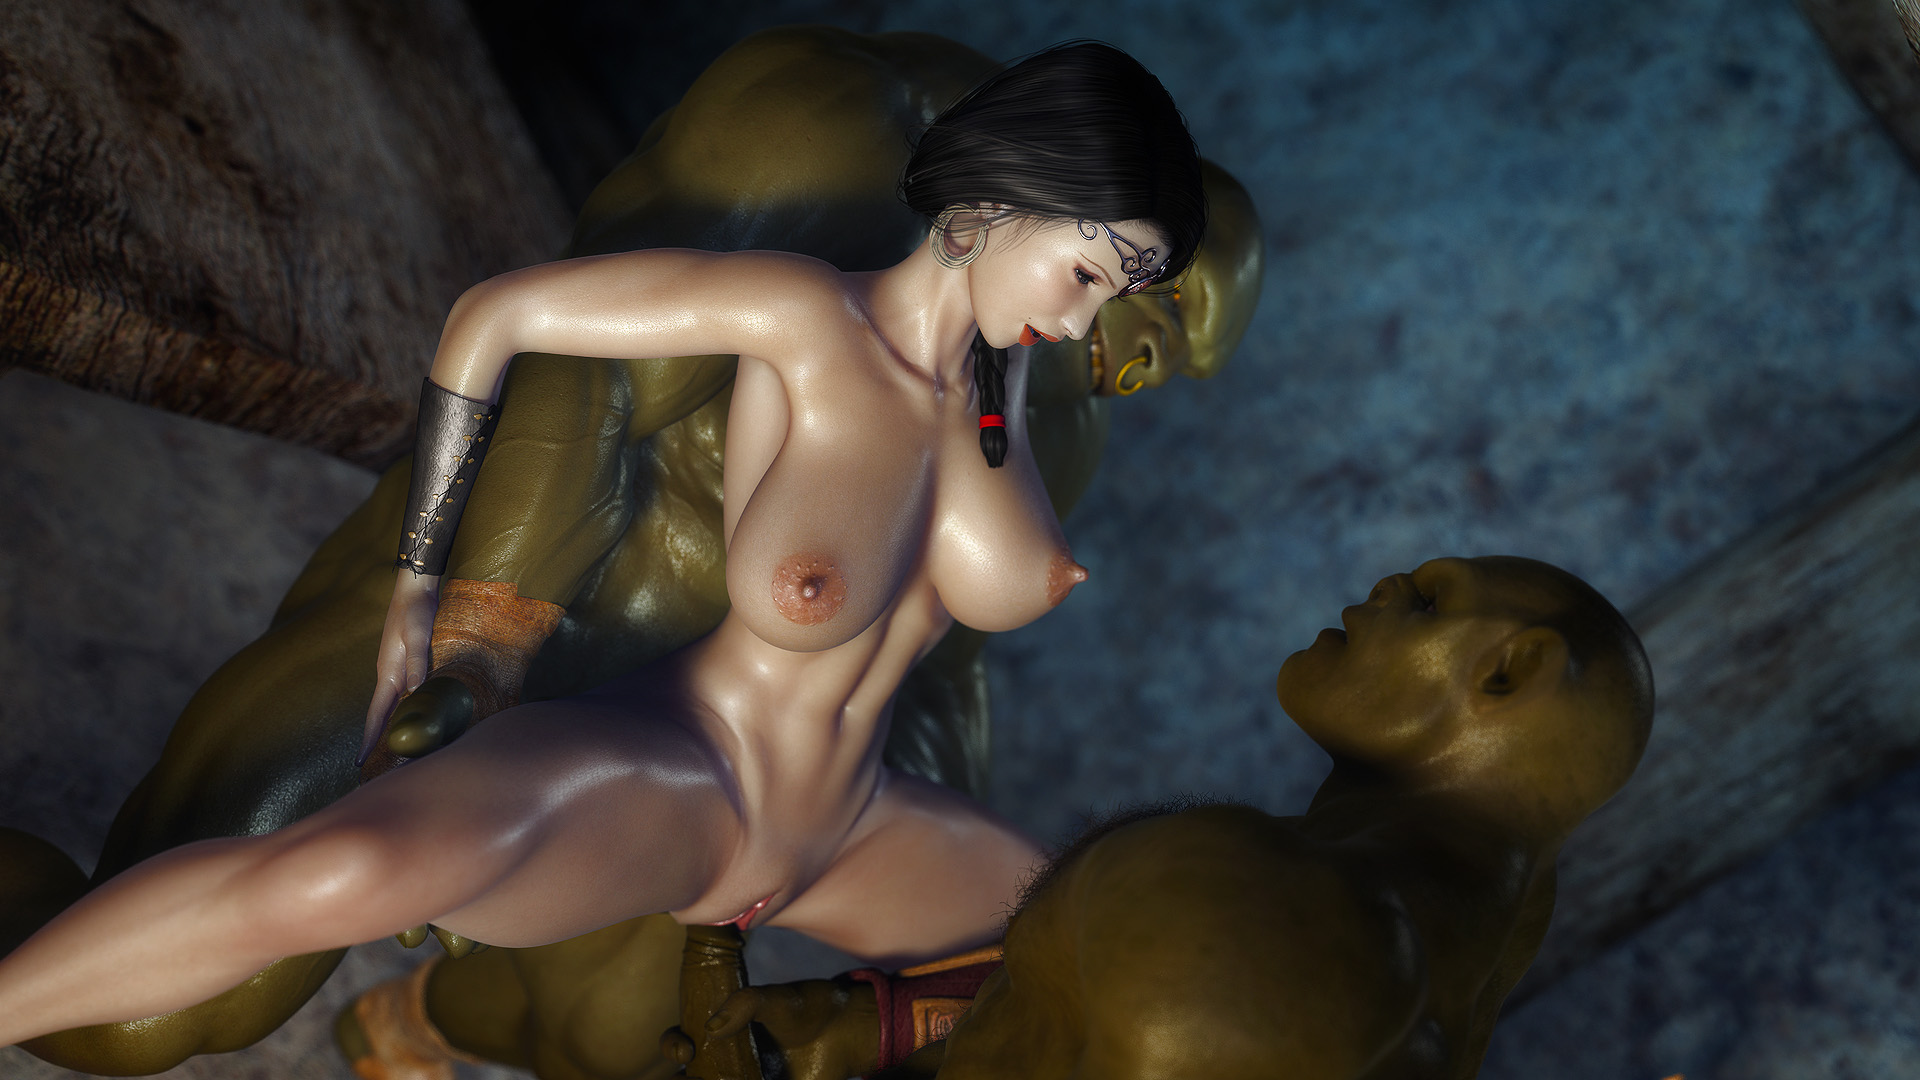 All nude cyber screenshots pornos comic